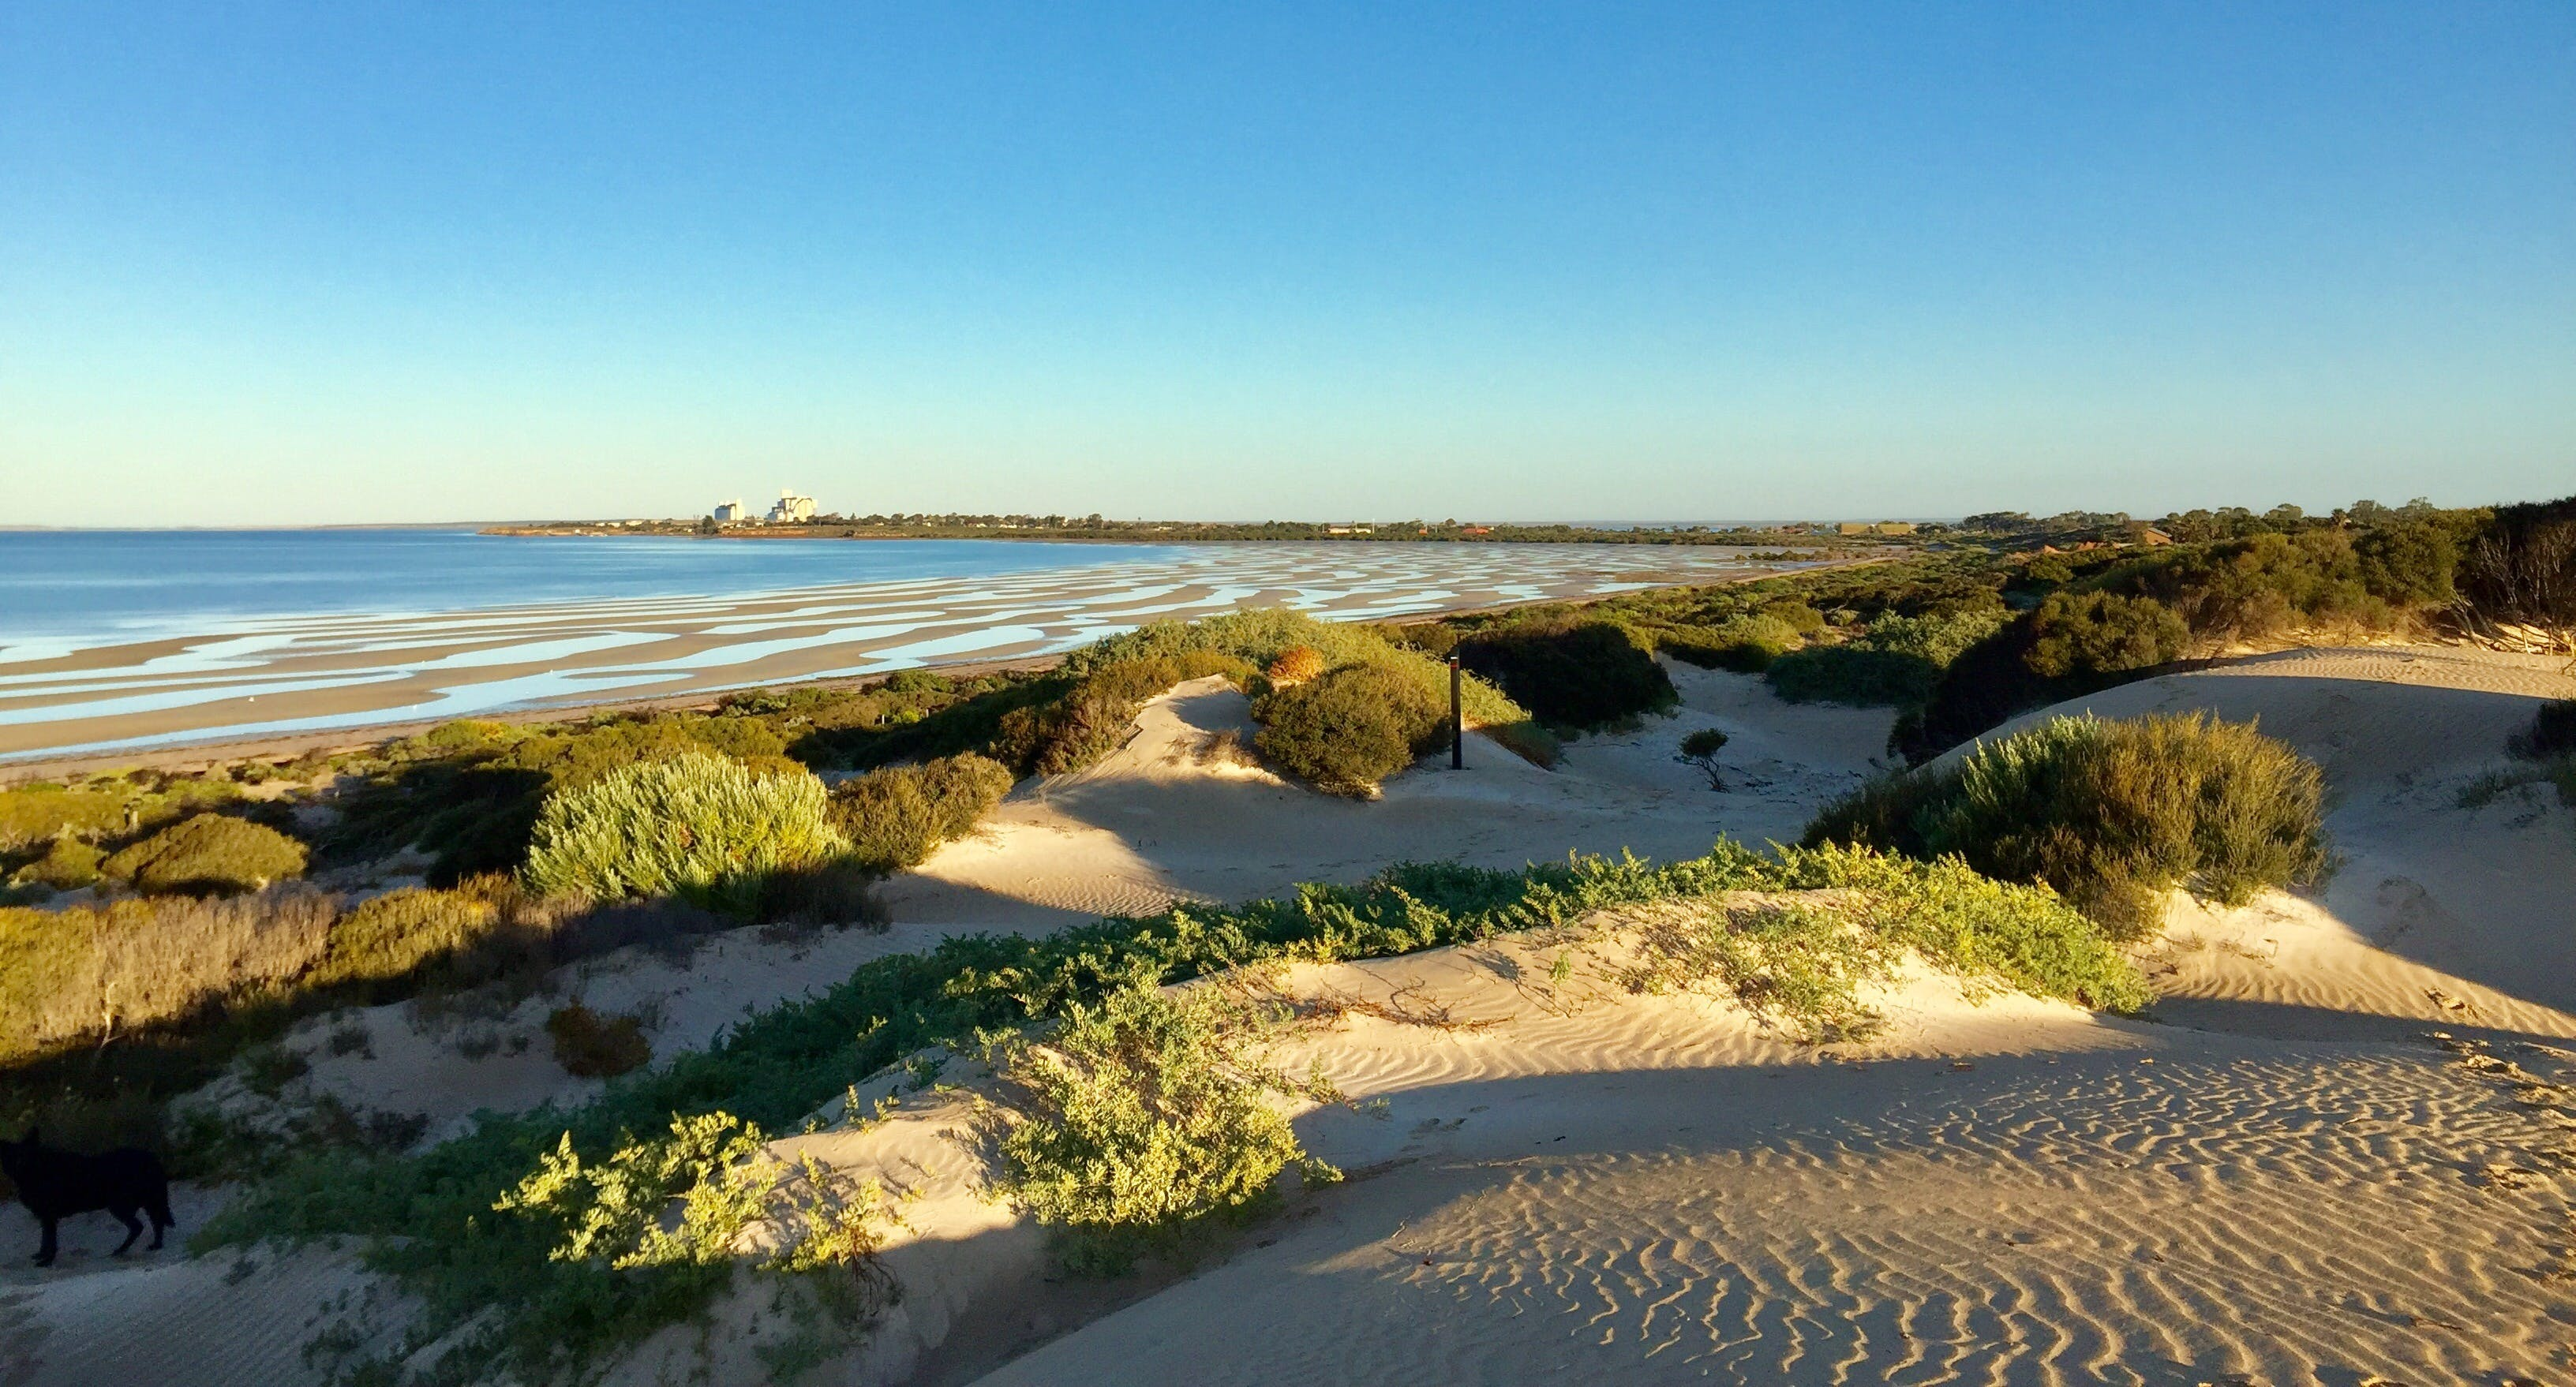 Shelly Beach Dune Walk Trail - Attractions